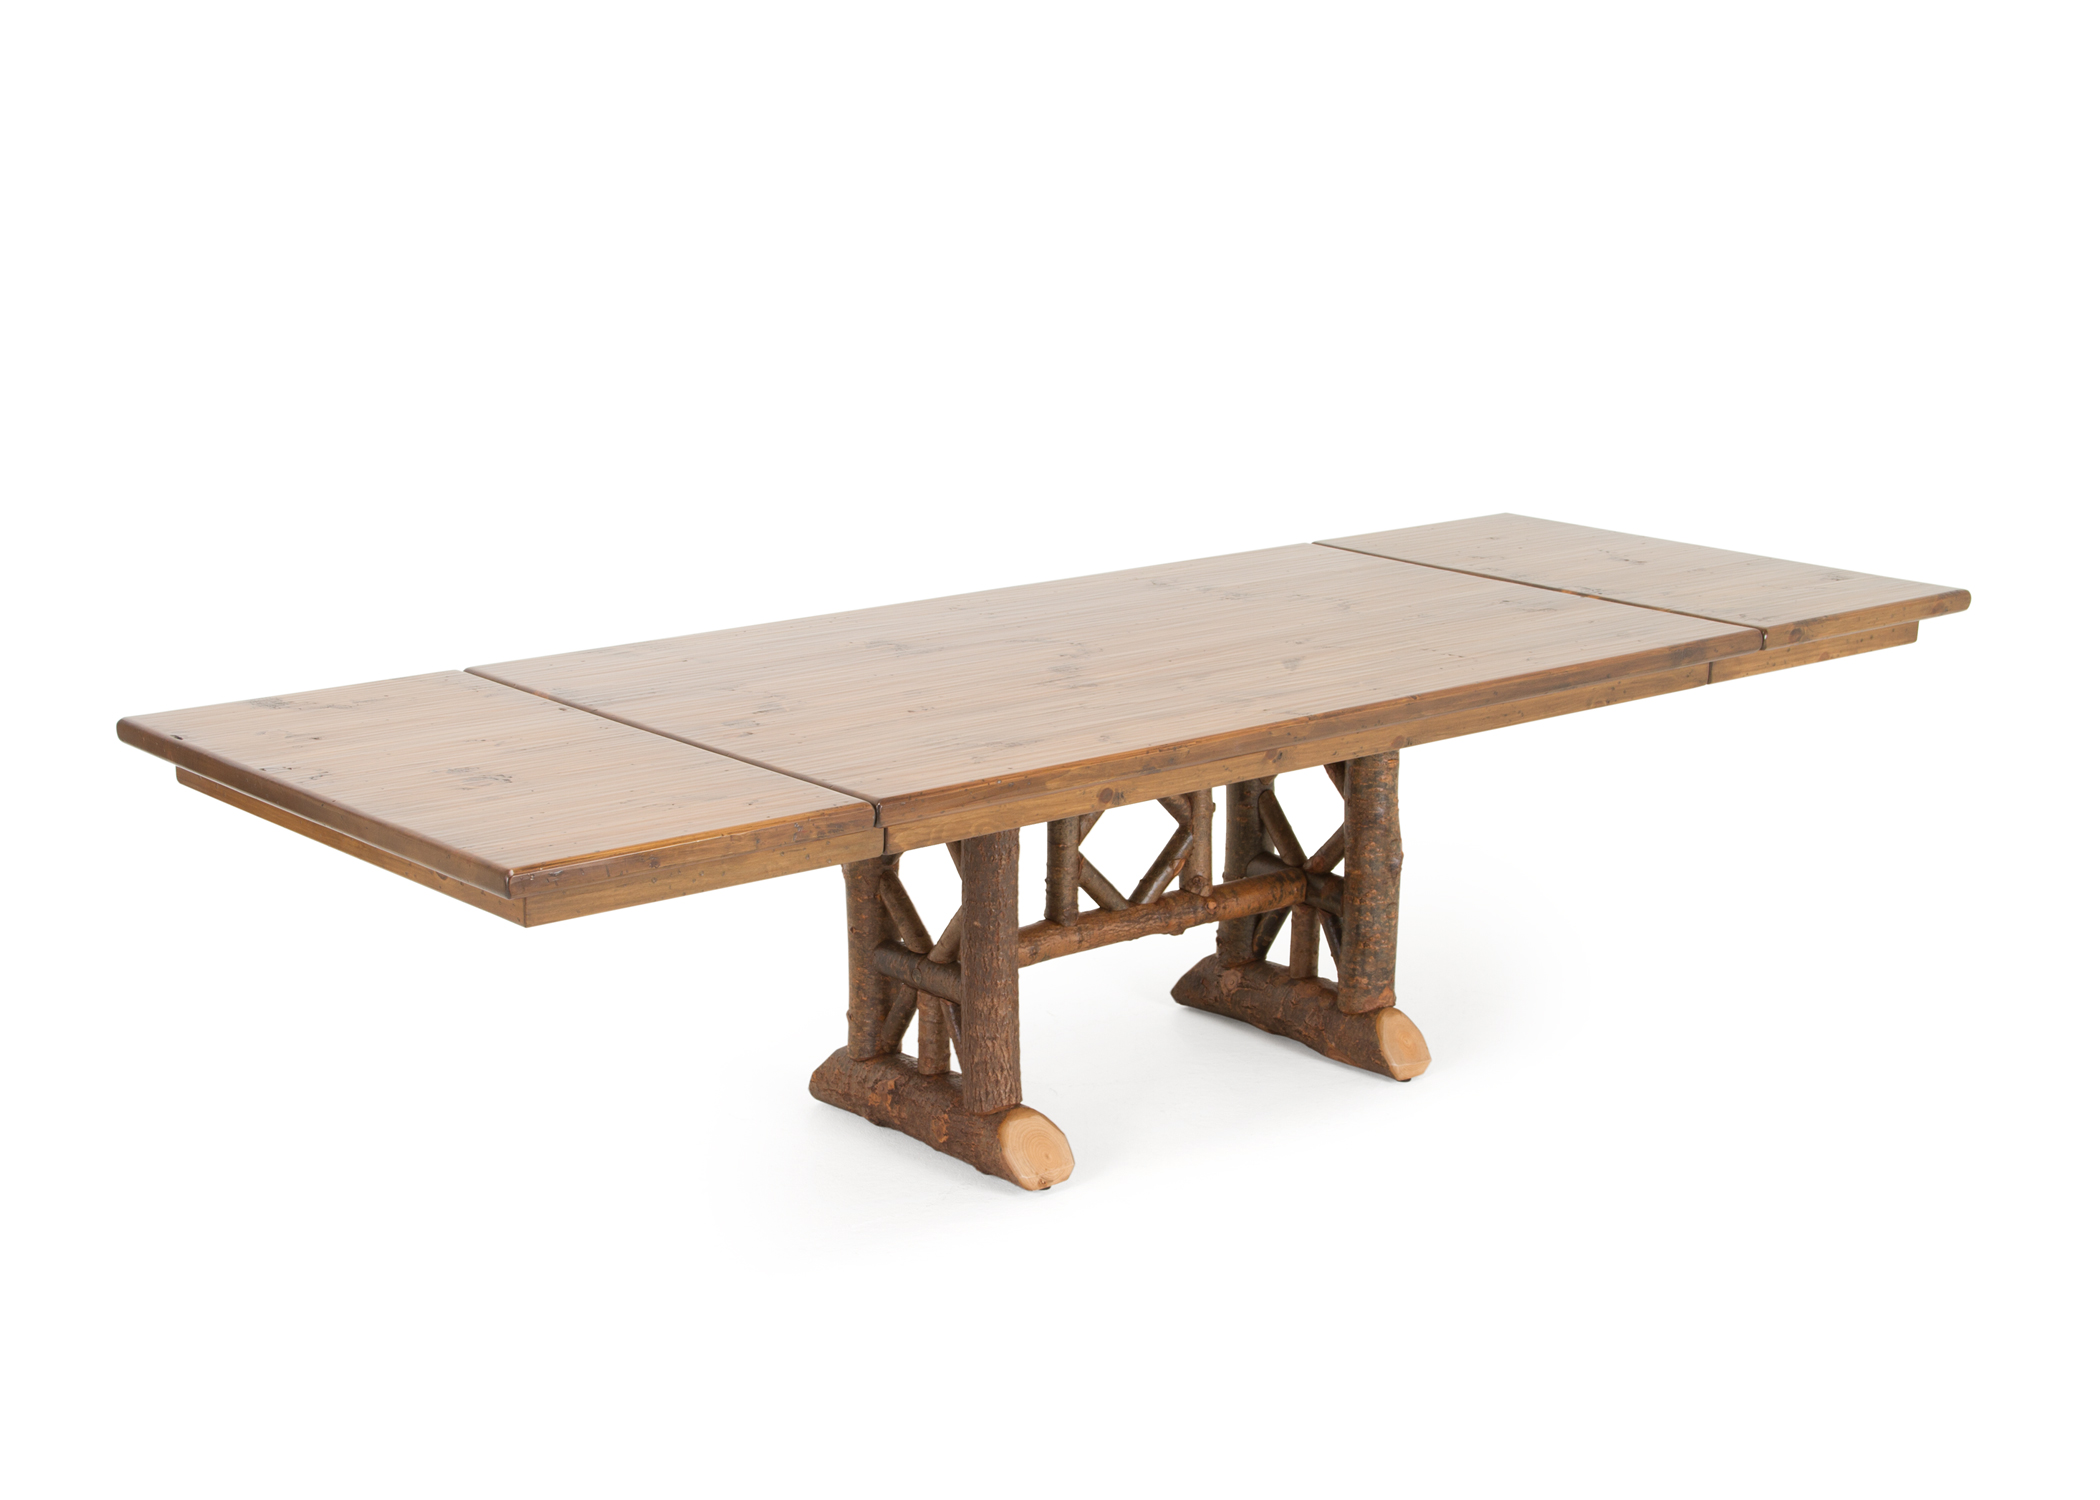 3119-Custom-Table-3-La-Lune-Collection-Rustic-Furniture